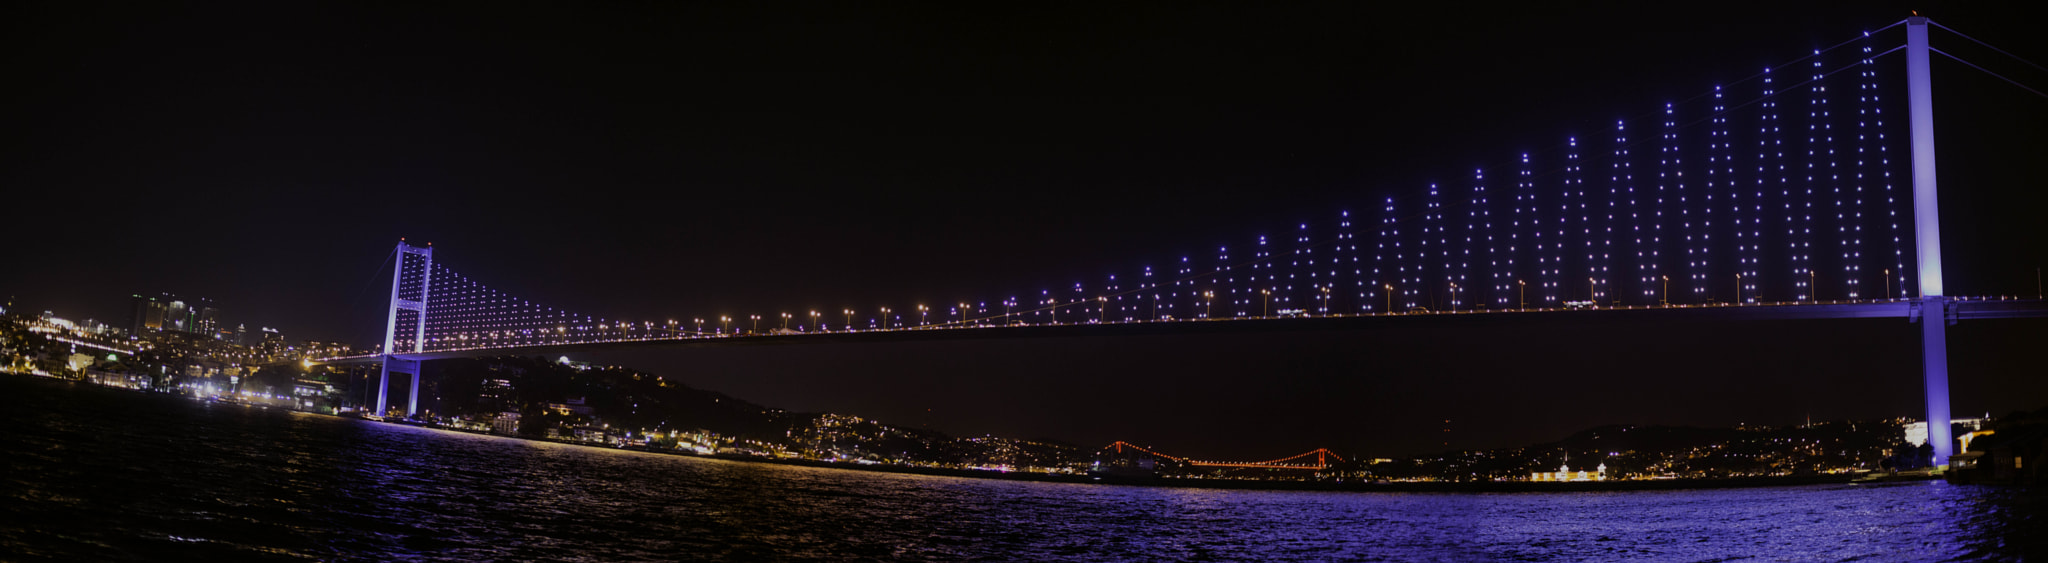 Photograph Bridge... by Kemalettin Sert on 500px